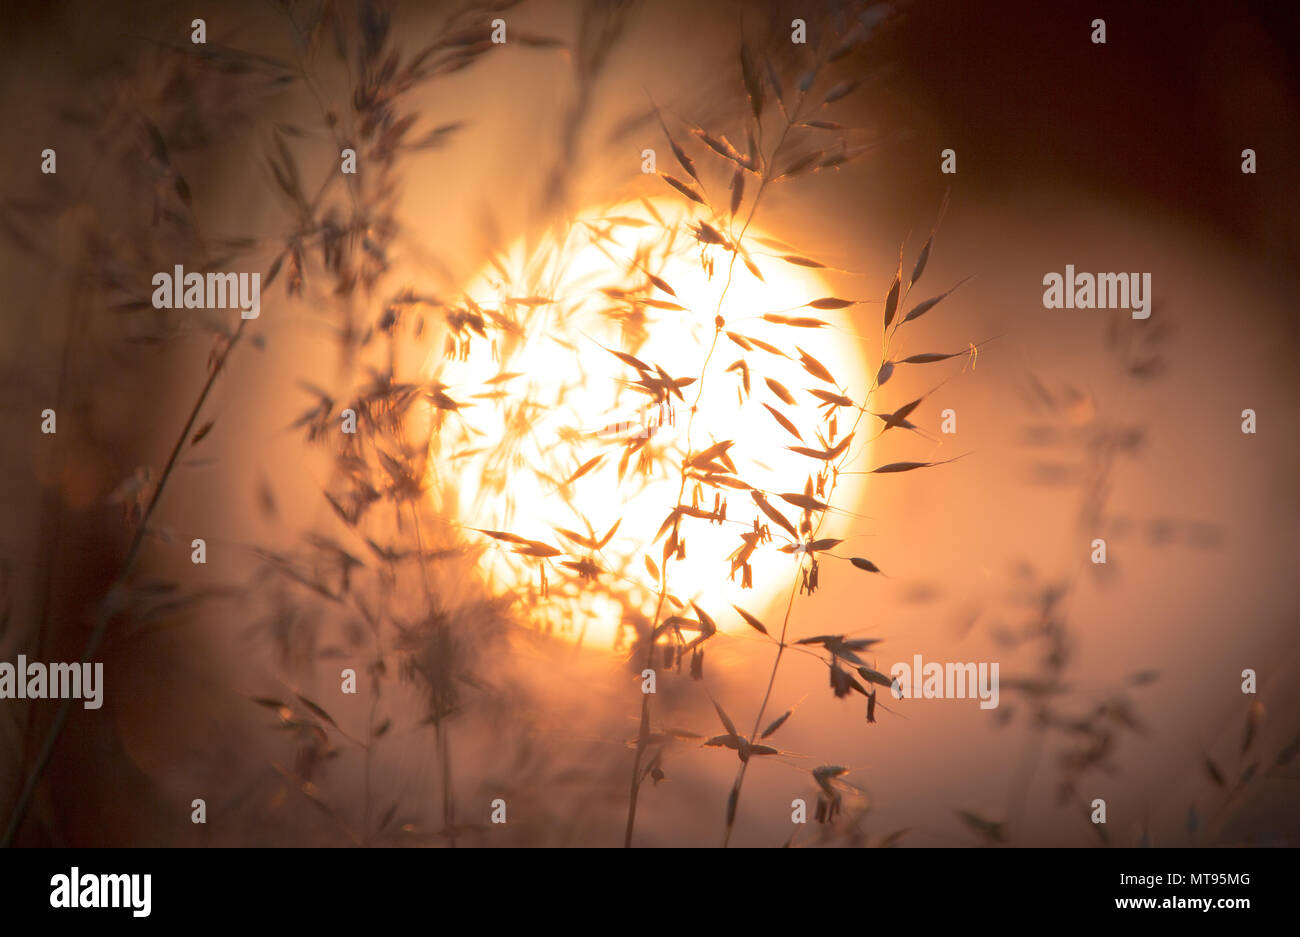 29 May 2018, Germany, Rehda-Wiedenbrueck: The sun rises in front of an oat field. Photo: Friso Gentsch/dpa - Stock Image